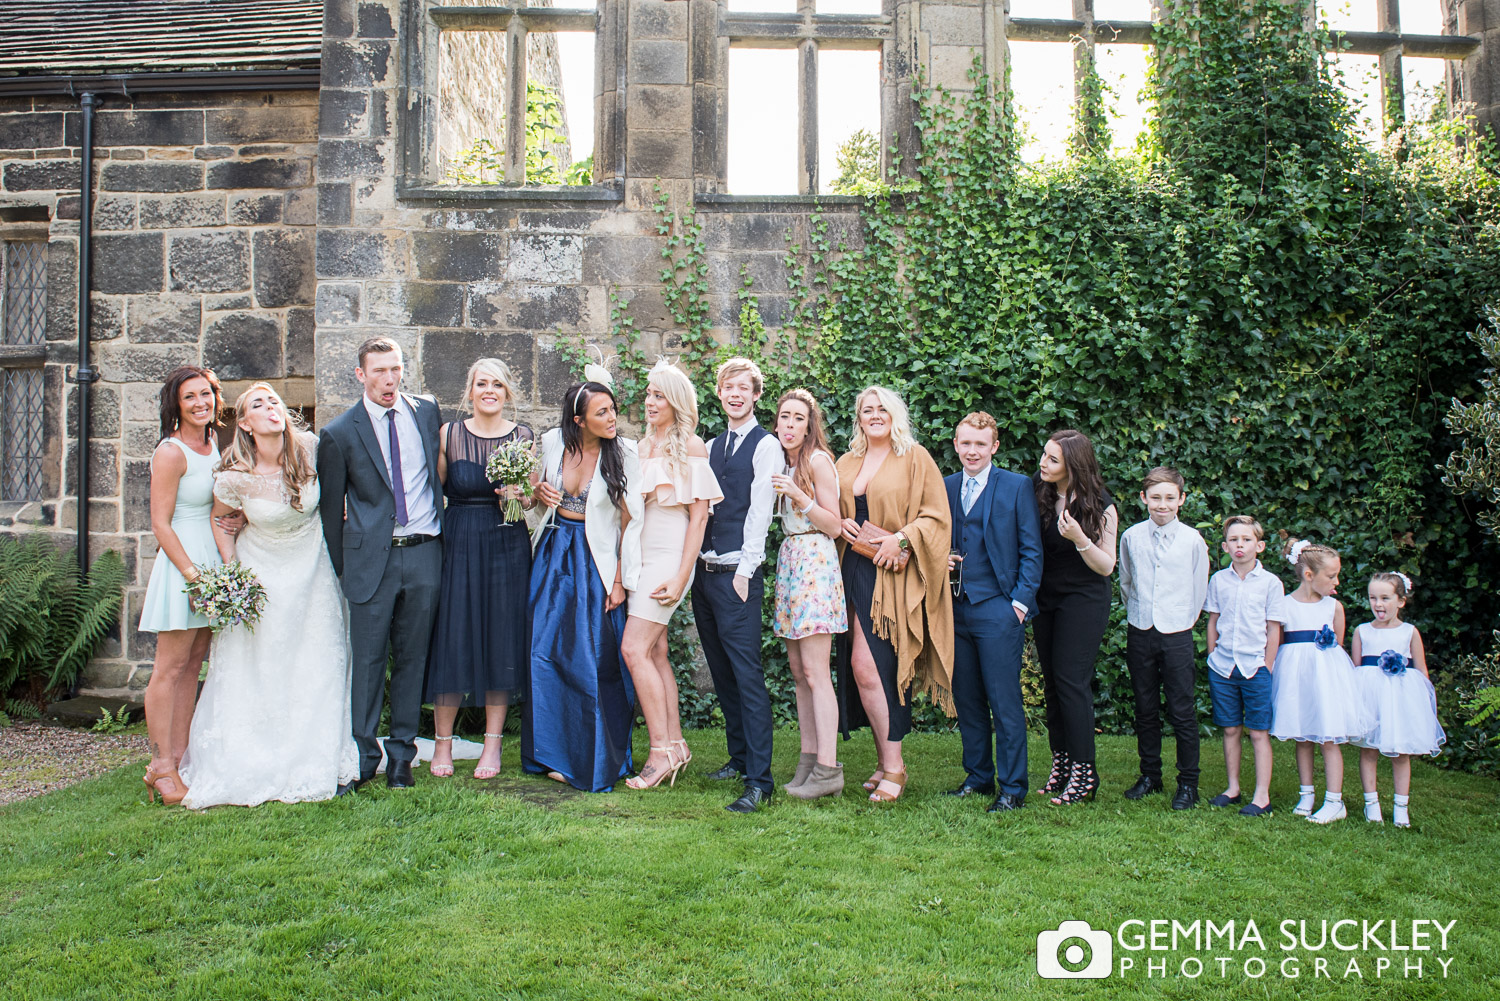 weddings-at-east-riddlesden-hall-23-©gemmasuckleyphotography.JPG